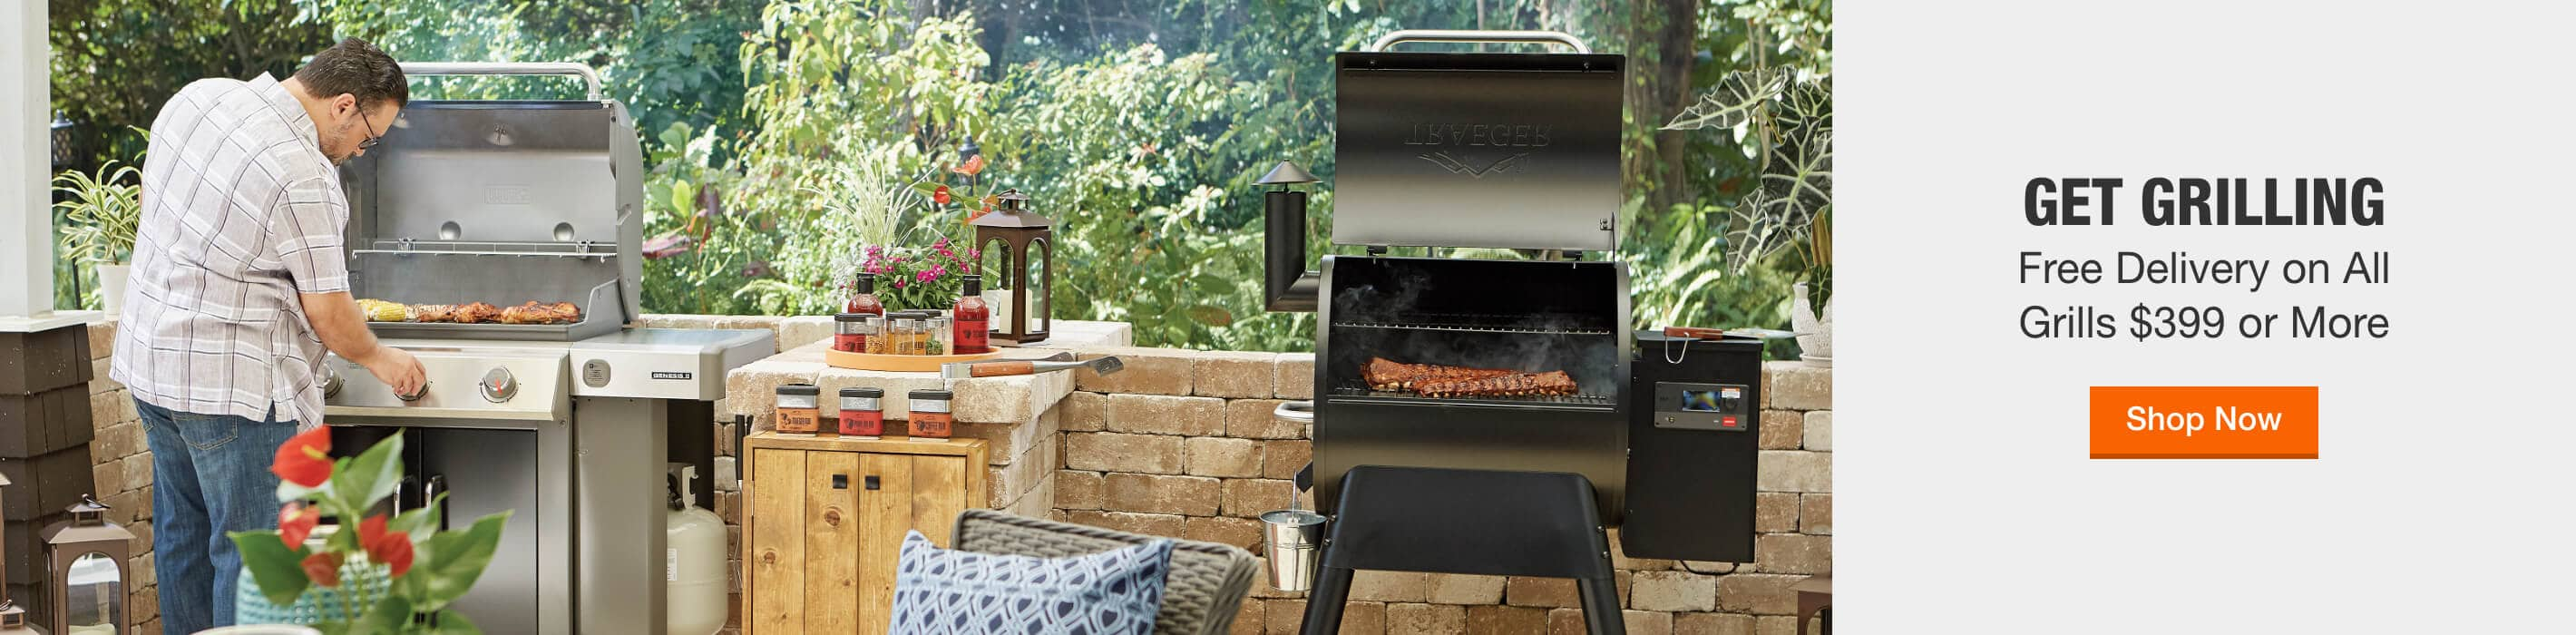 GET GRILLING - Free Delivery on All Grills $399 or More. Shop Now